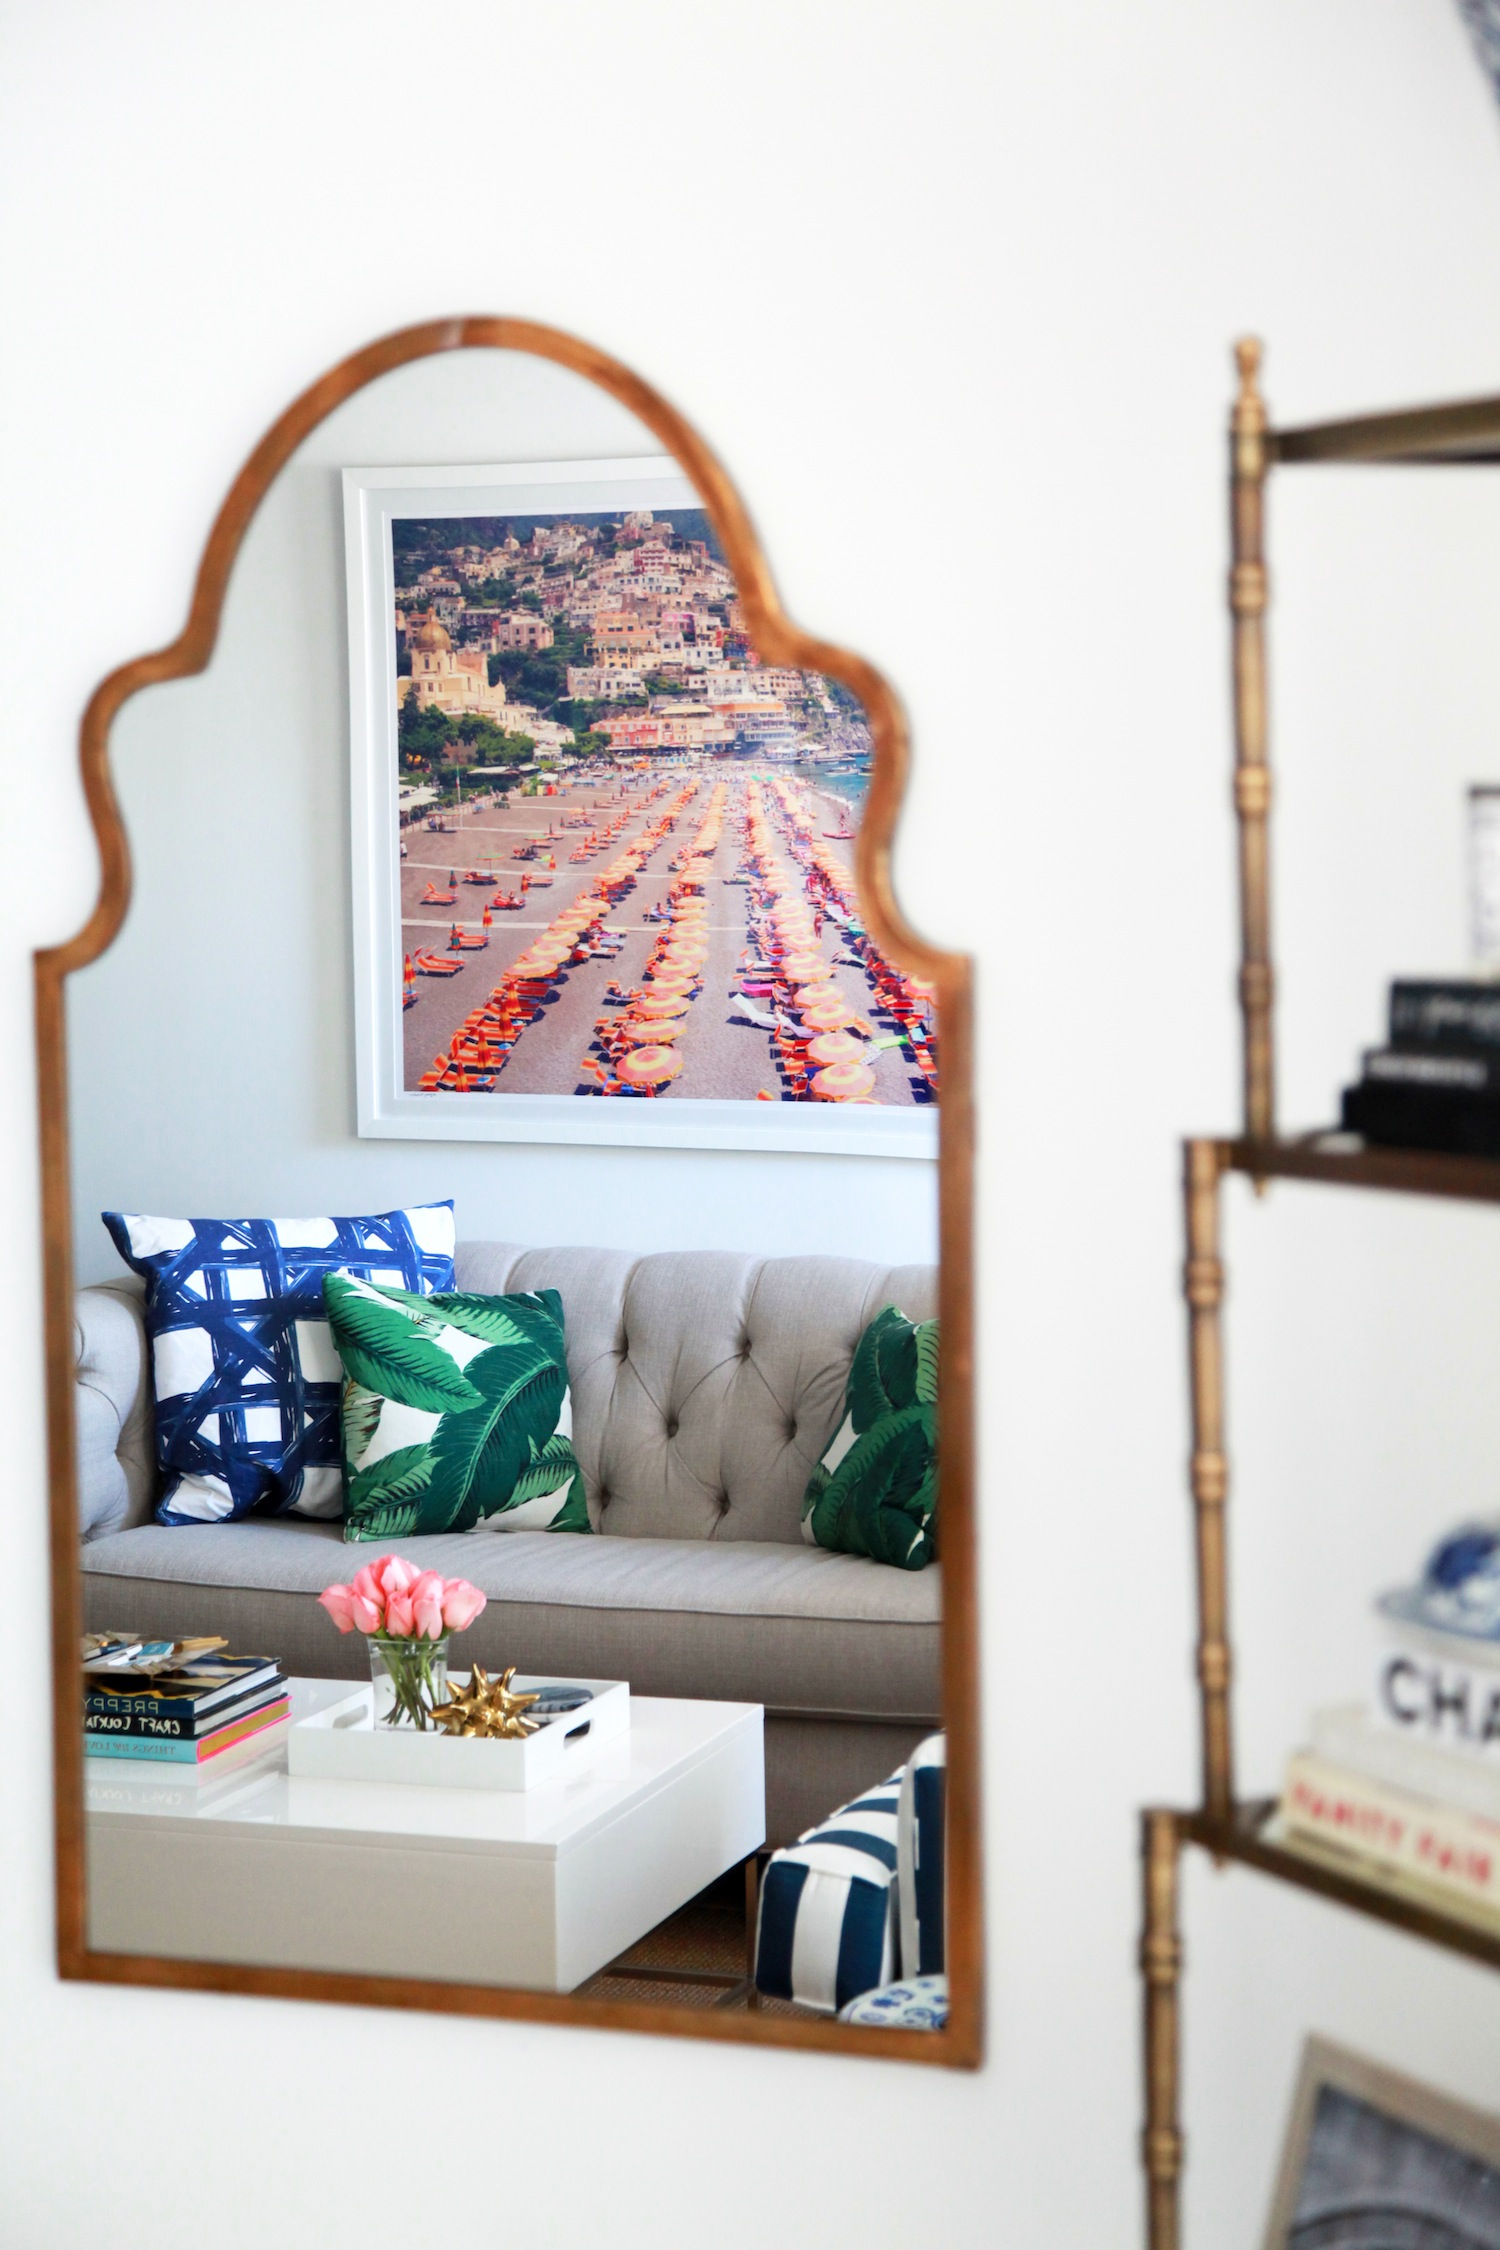 4 Easy Decorating Ideas To Make Your Apartment Look Bigger A creative decorating idea to make an apartment feel bigger is to  strategically hang mirrors on